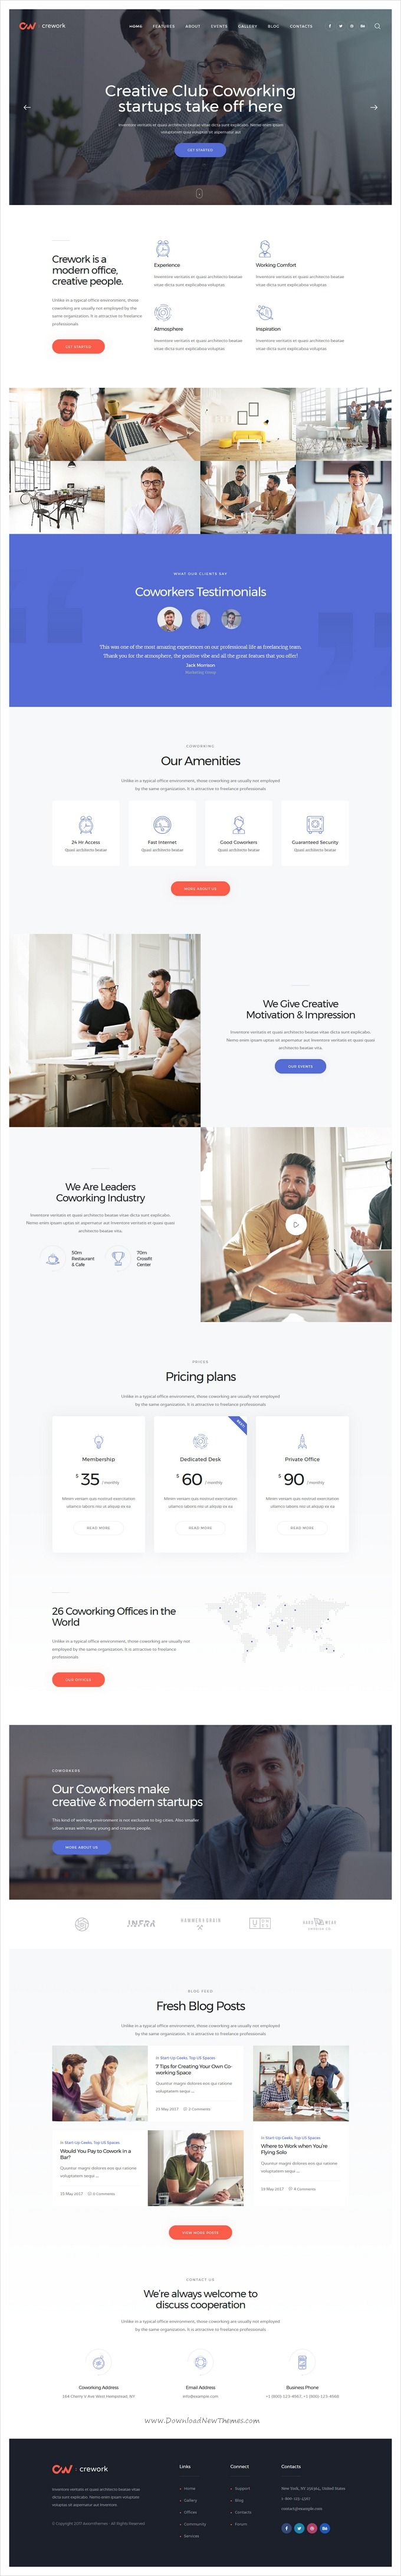 Crework is clean and modern design 3in1 responsive #WordPress theme for creative #coworking, open office, workshop and #conferences website download now..